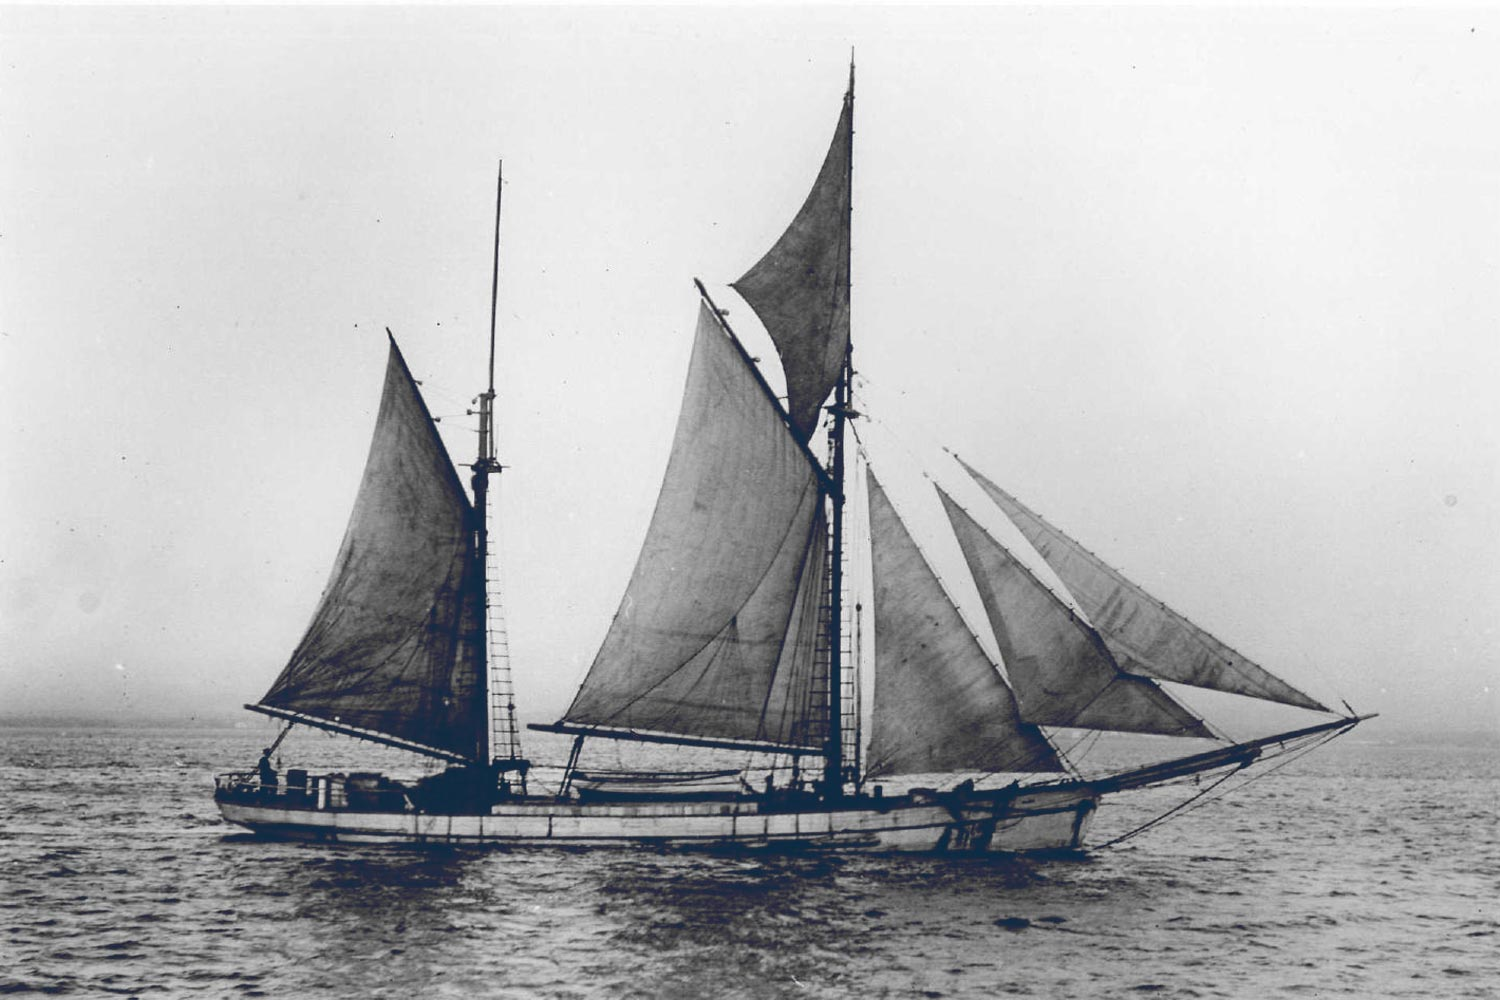 Historical ship photo